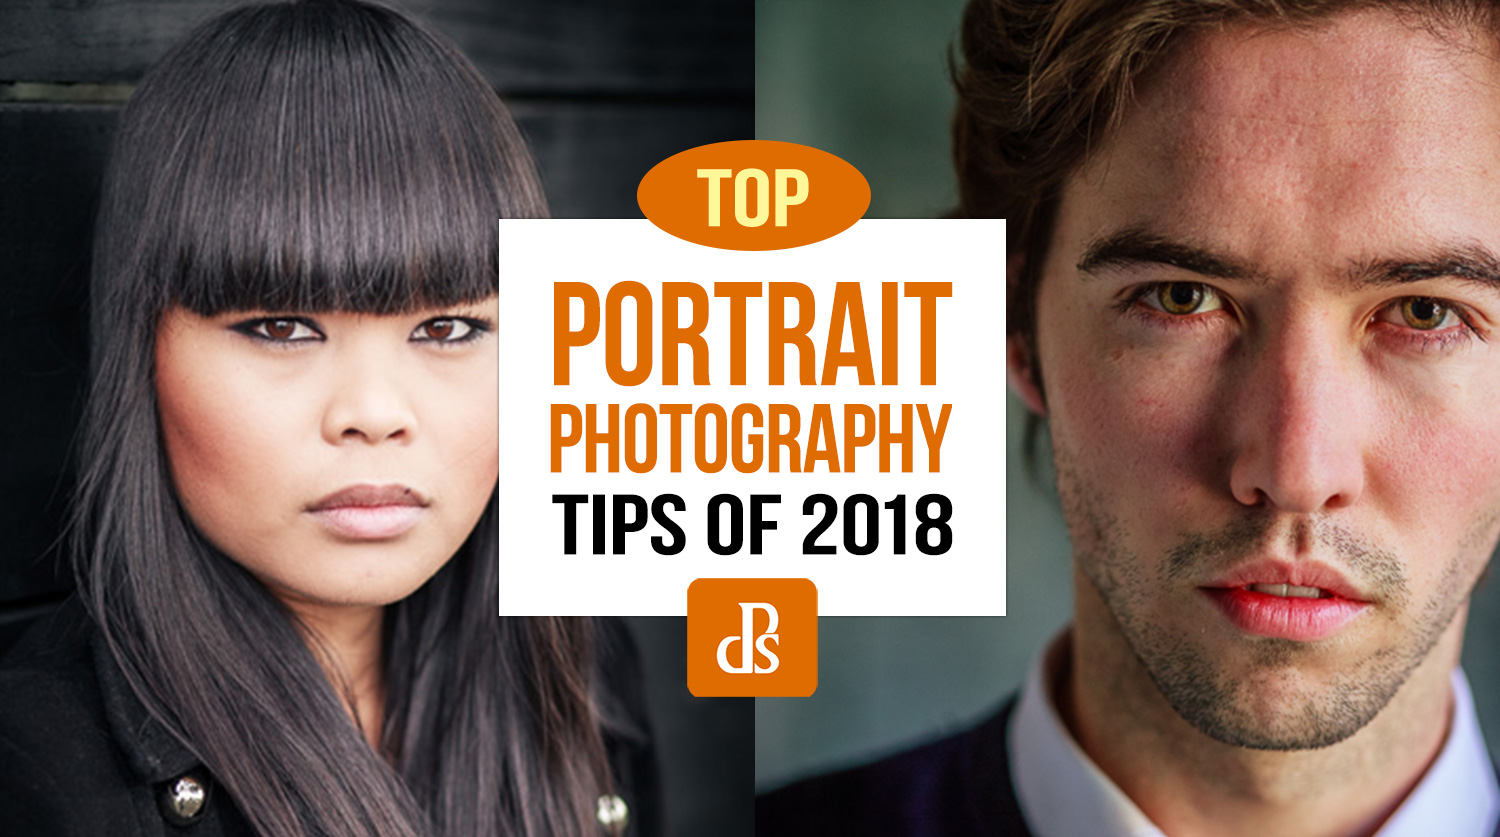 The dPS Top Portrait Photography Tips of 2018